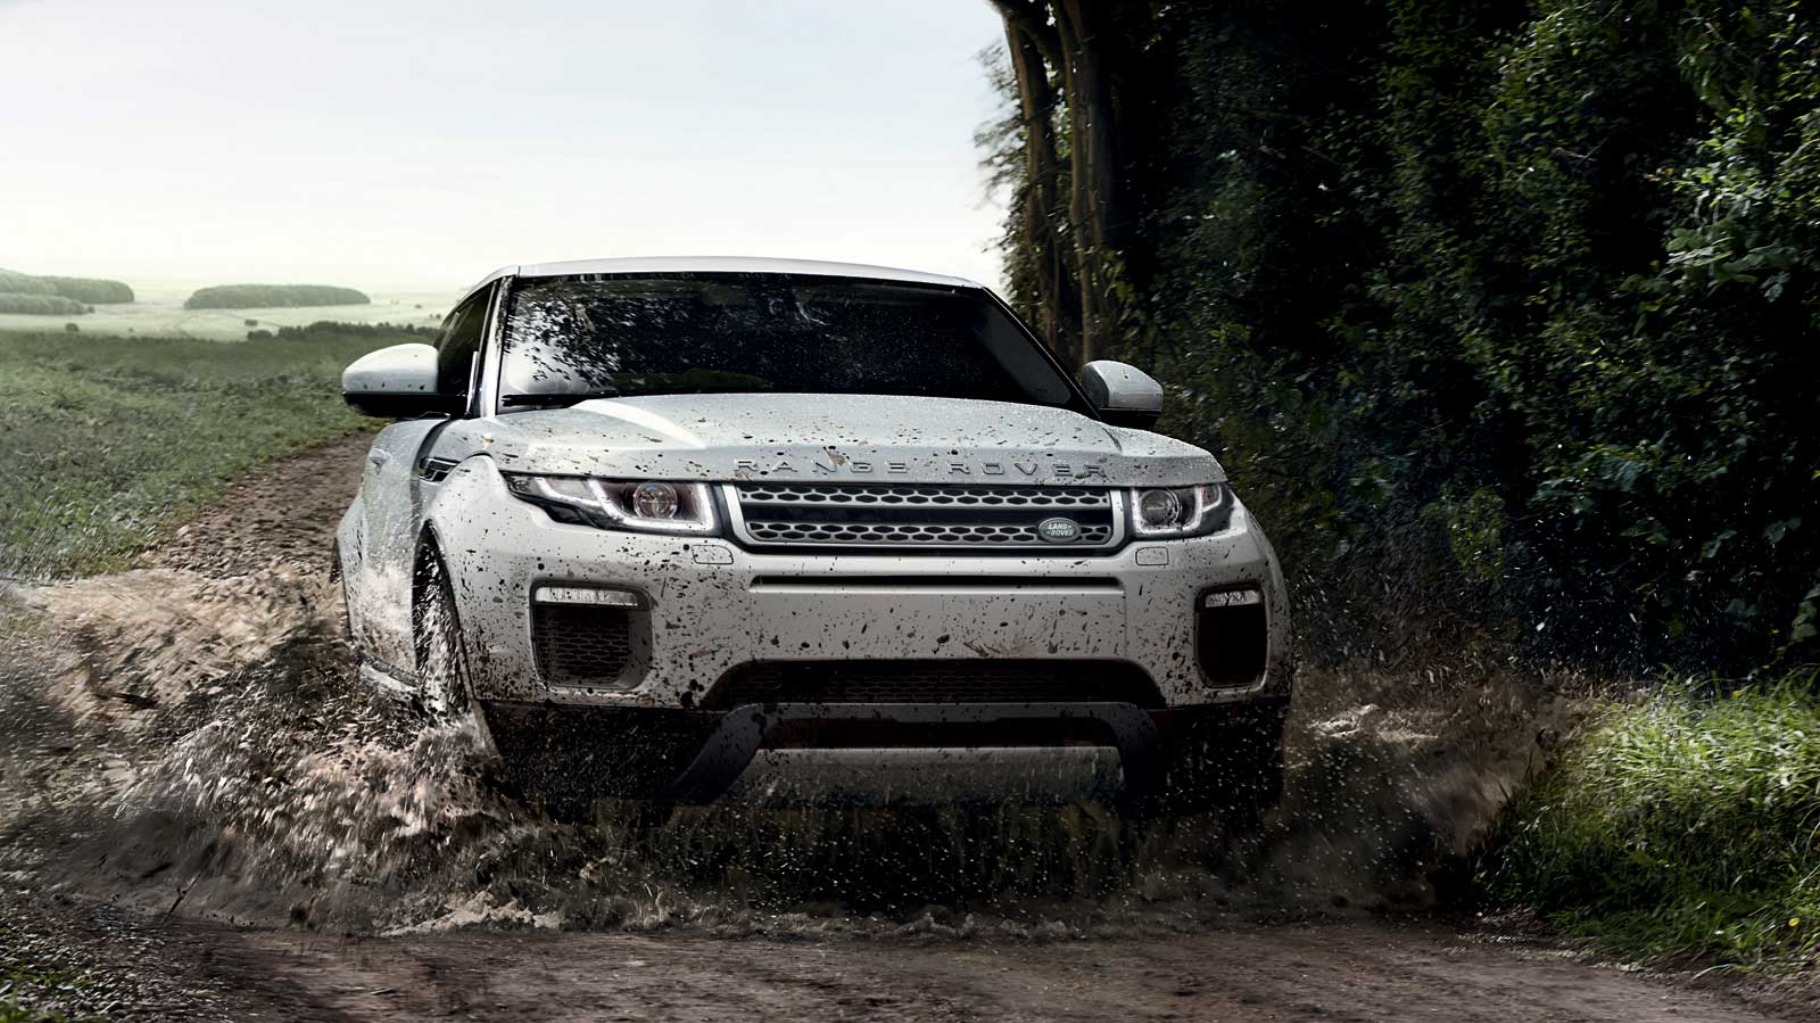 2019 Land Rover Evoque off road drive hd wallpaper and images 1820x1023